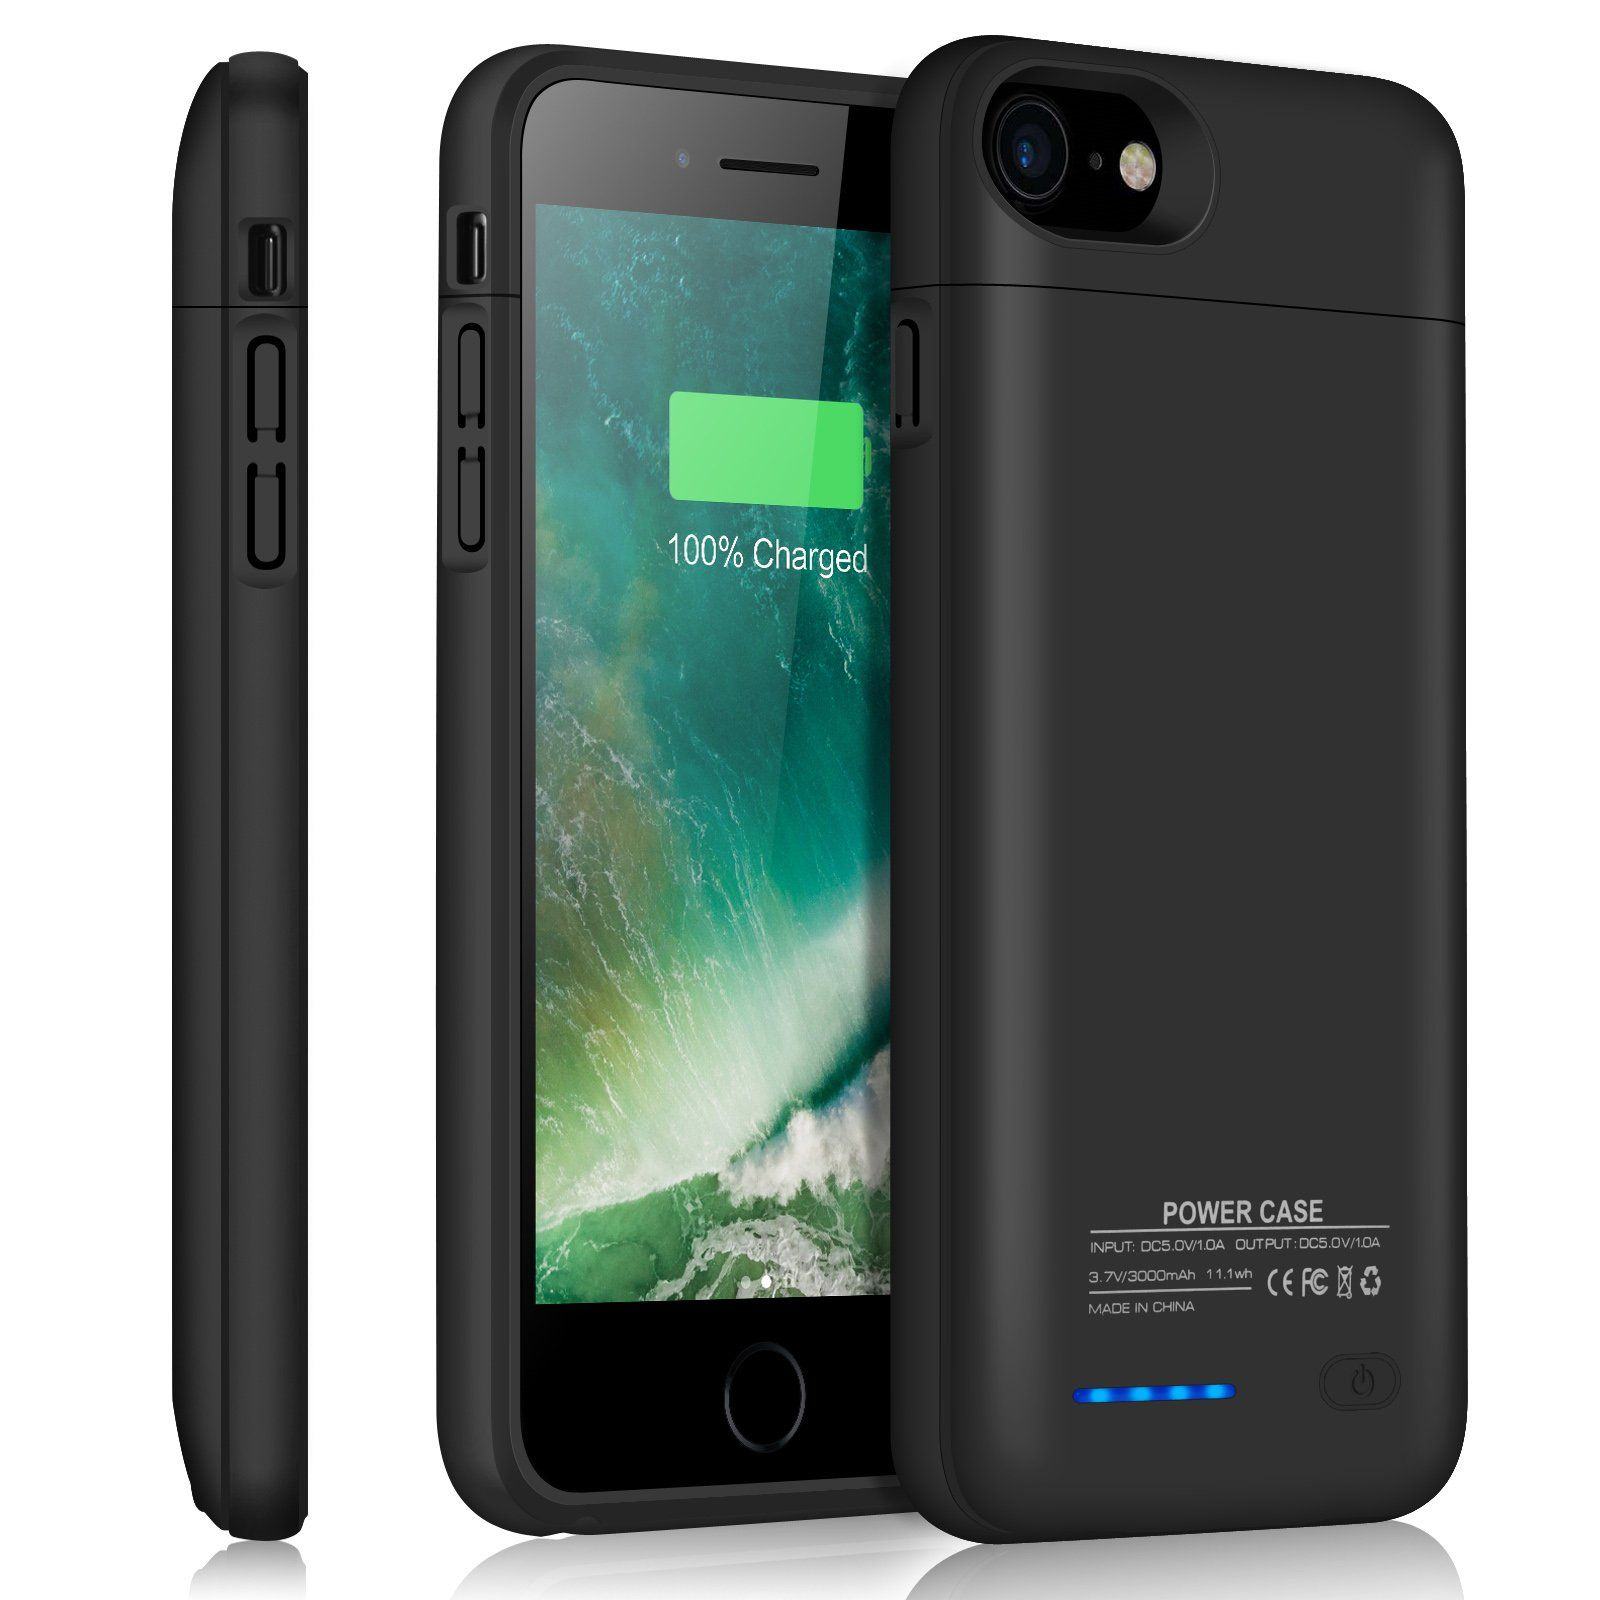 iphone 7 phone charger case slim